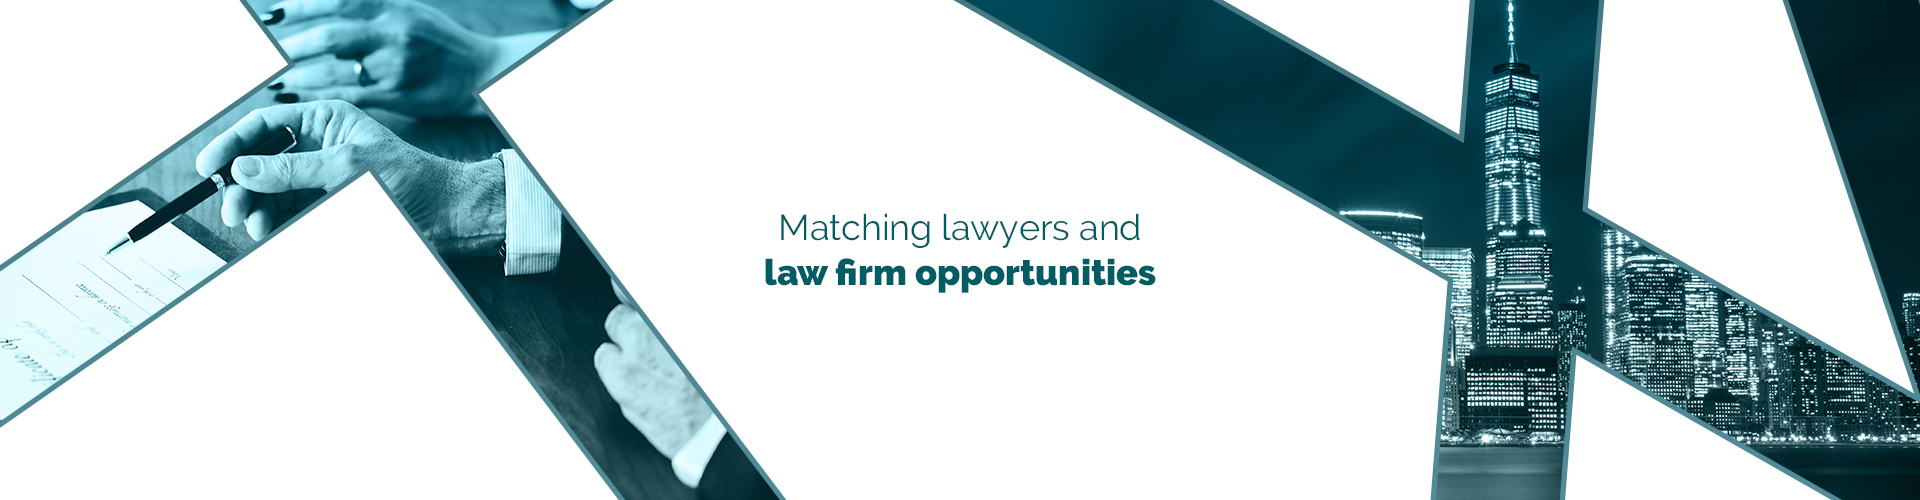 Marsden Group Private Practice Recruitment Matching lawyers and law firm opportunities